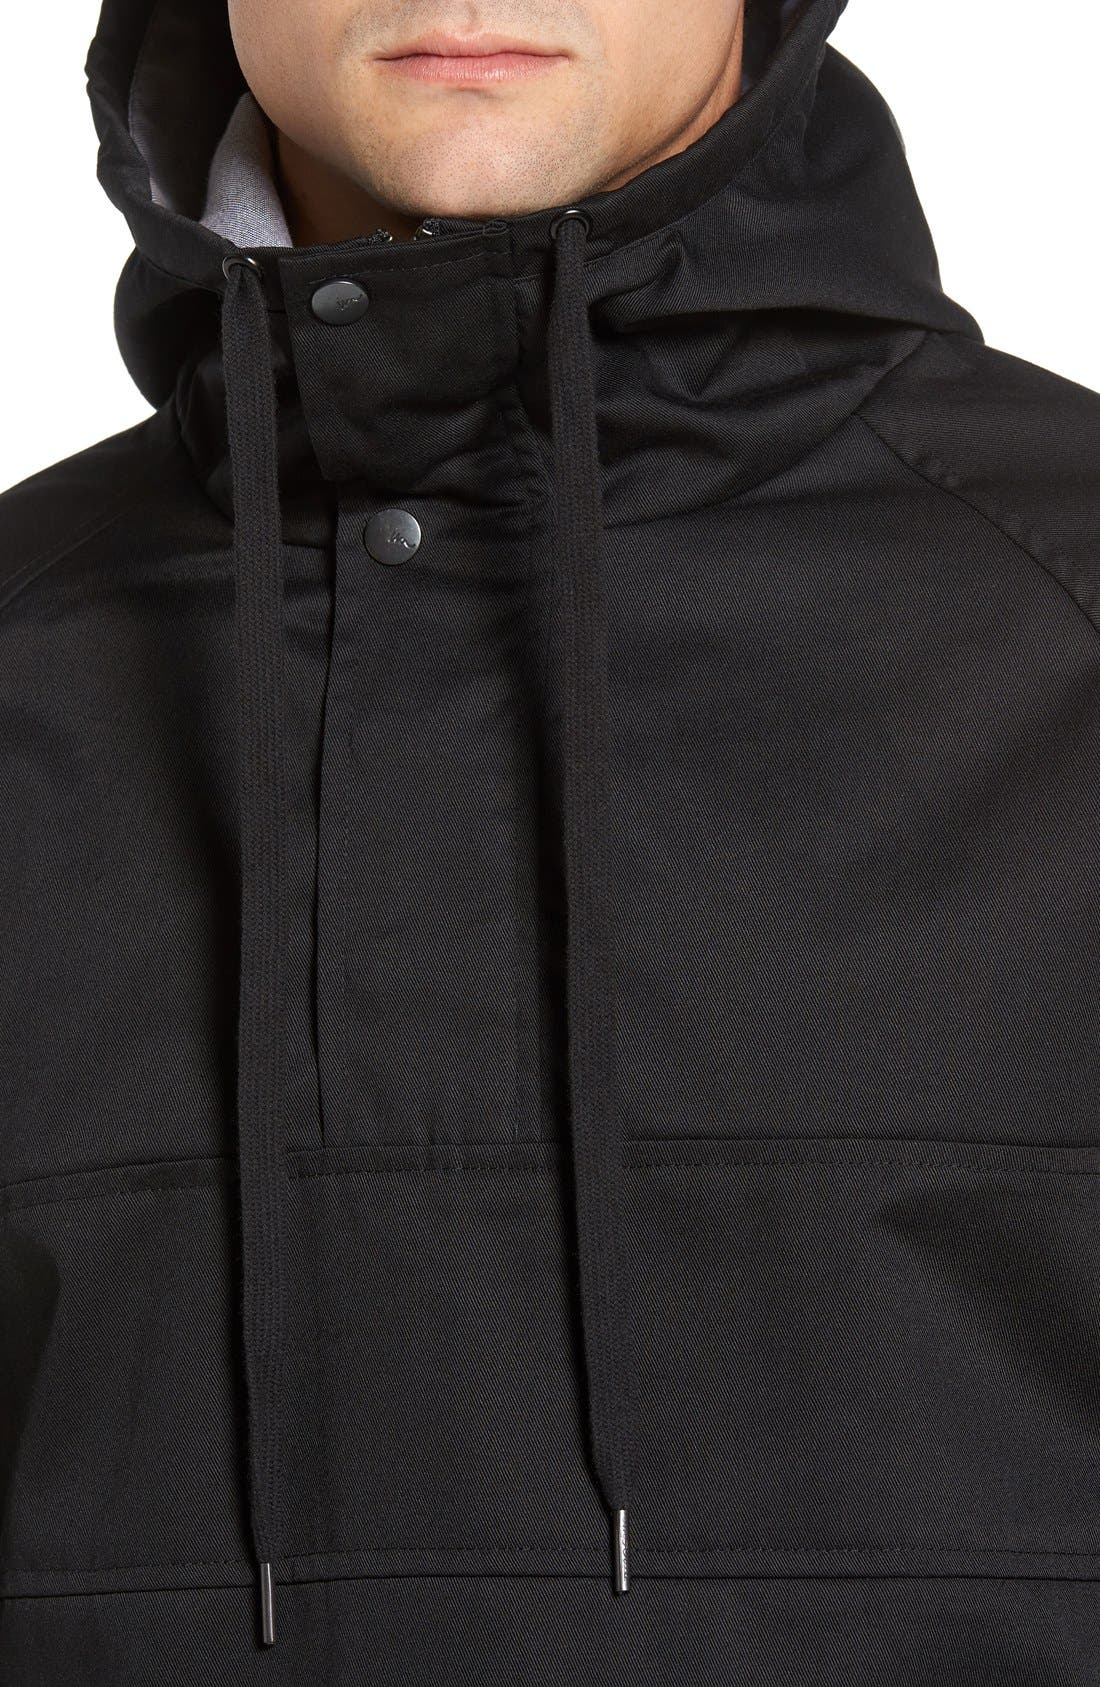 'Clinton' Hooded Anorak,                             Alternate thumbnail 4, color,                             001